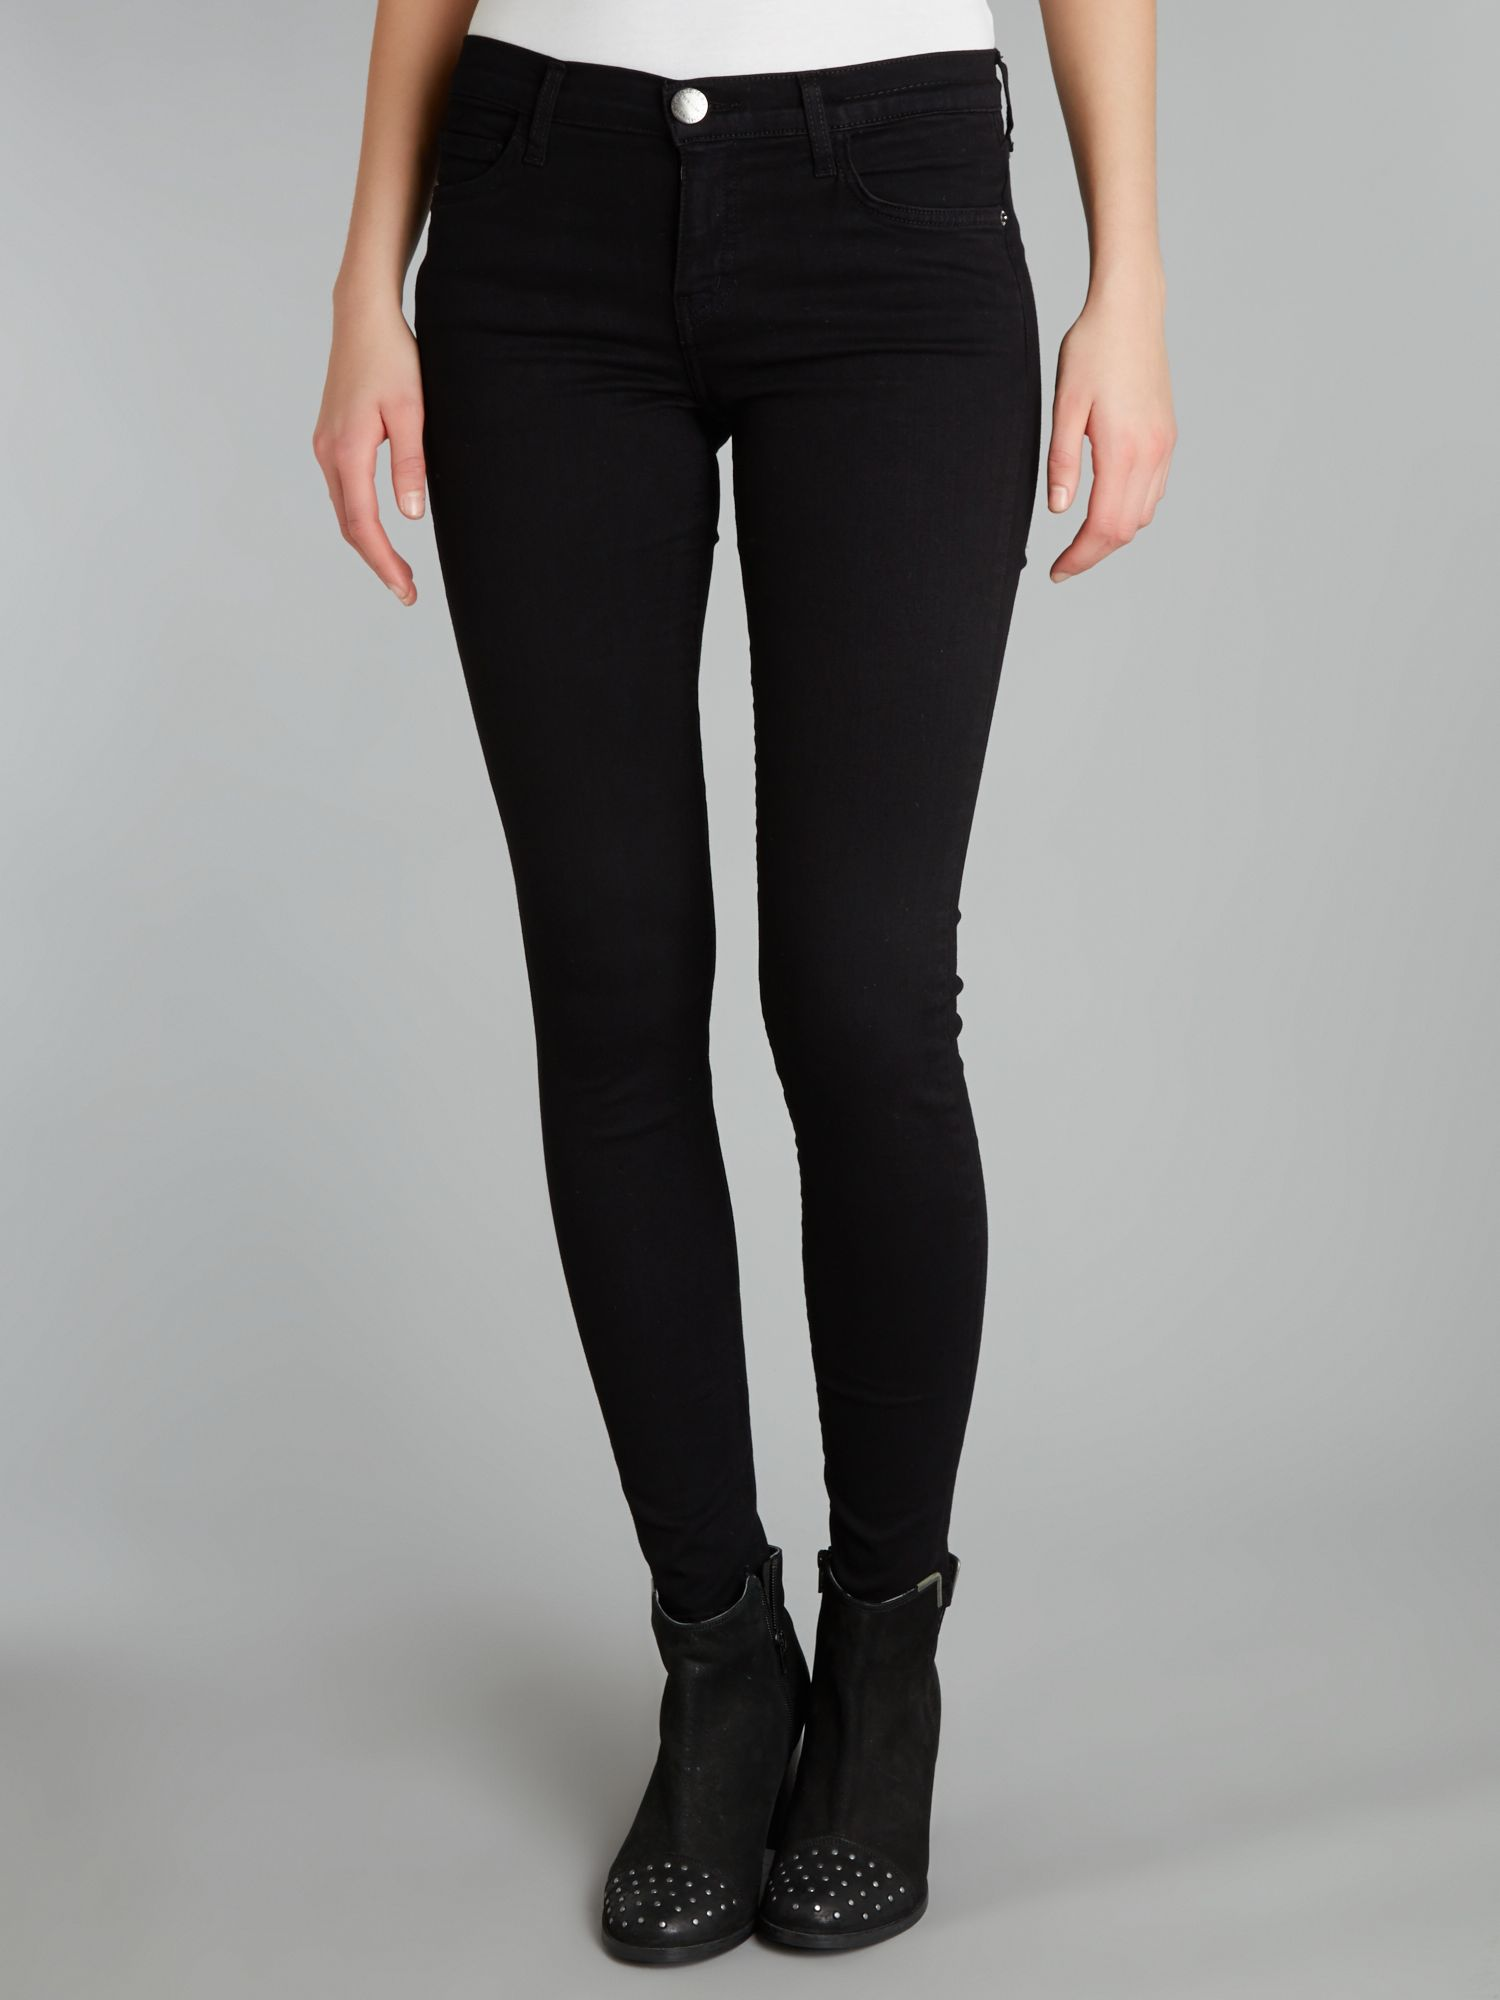 The Ankle Skinny in Jet Black